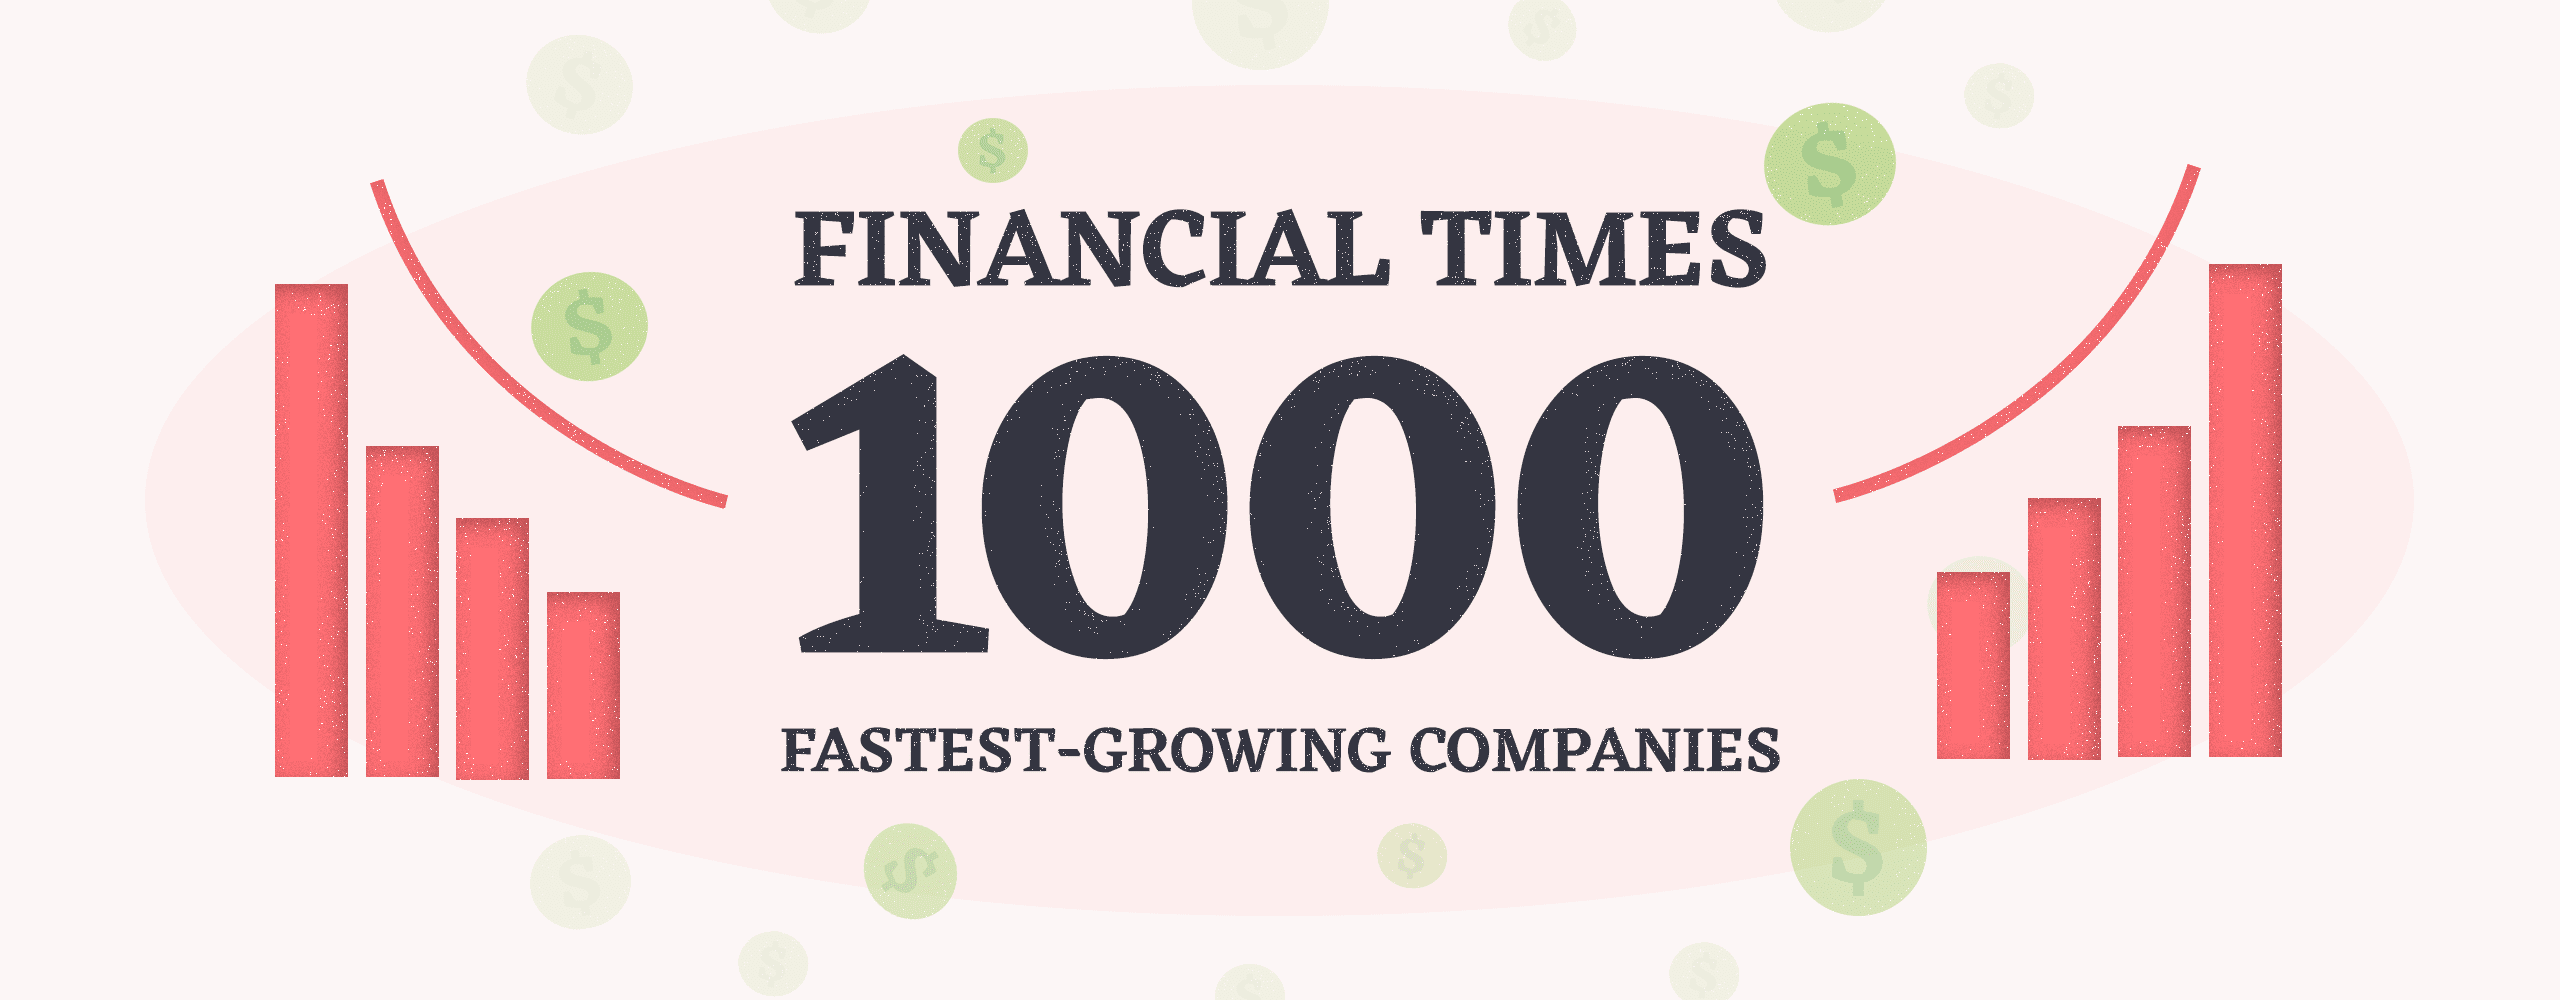 Monterail in the Financial Times 1000 List for the Second Time